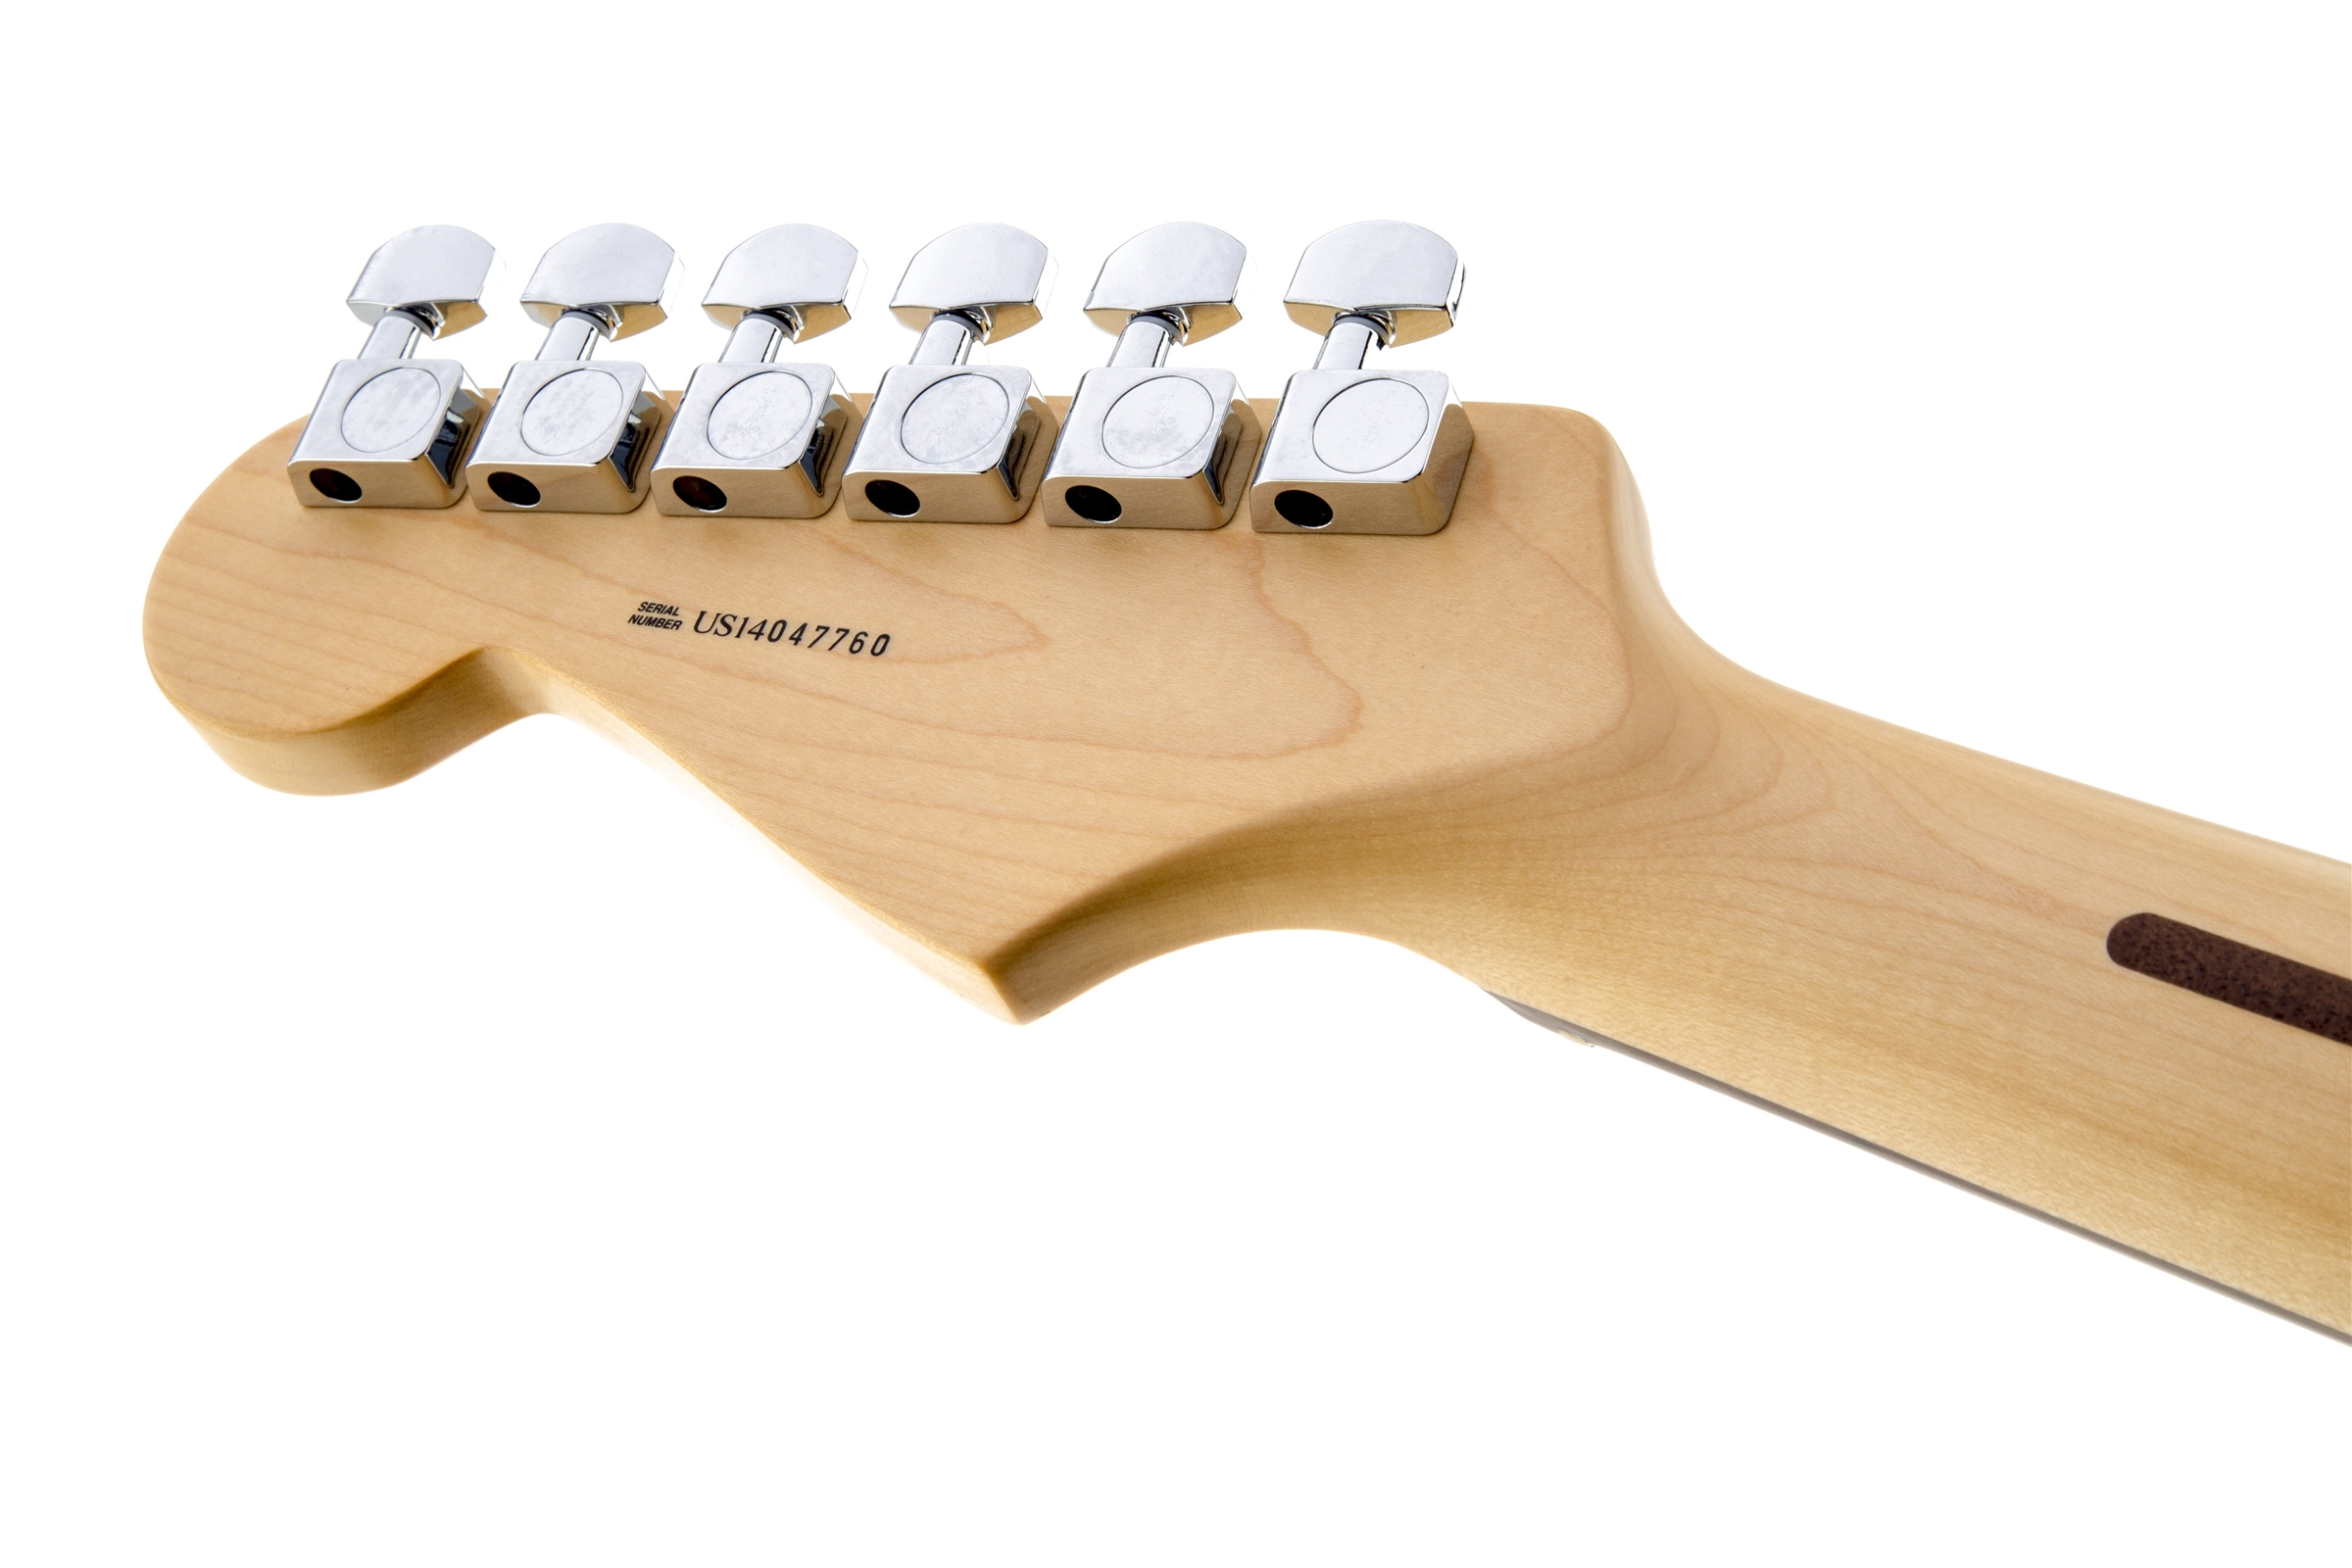 0113000700_gtr_hdstckbck_001_nr_e4348eb473c6ea86fb4331be8ffb2d00 fender american standard stratocaster � black maple fingerboard mexican fat strat wiring diagram at crackthecode.co